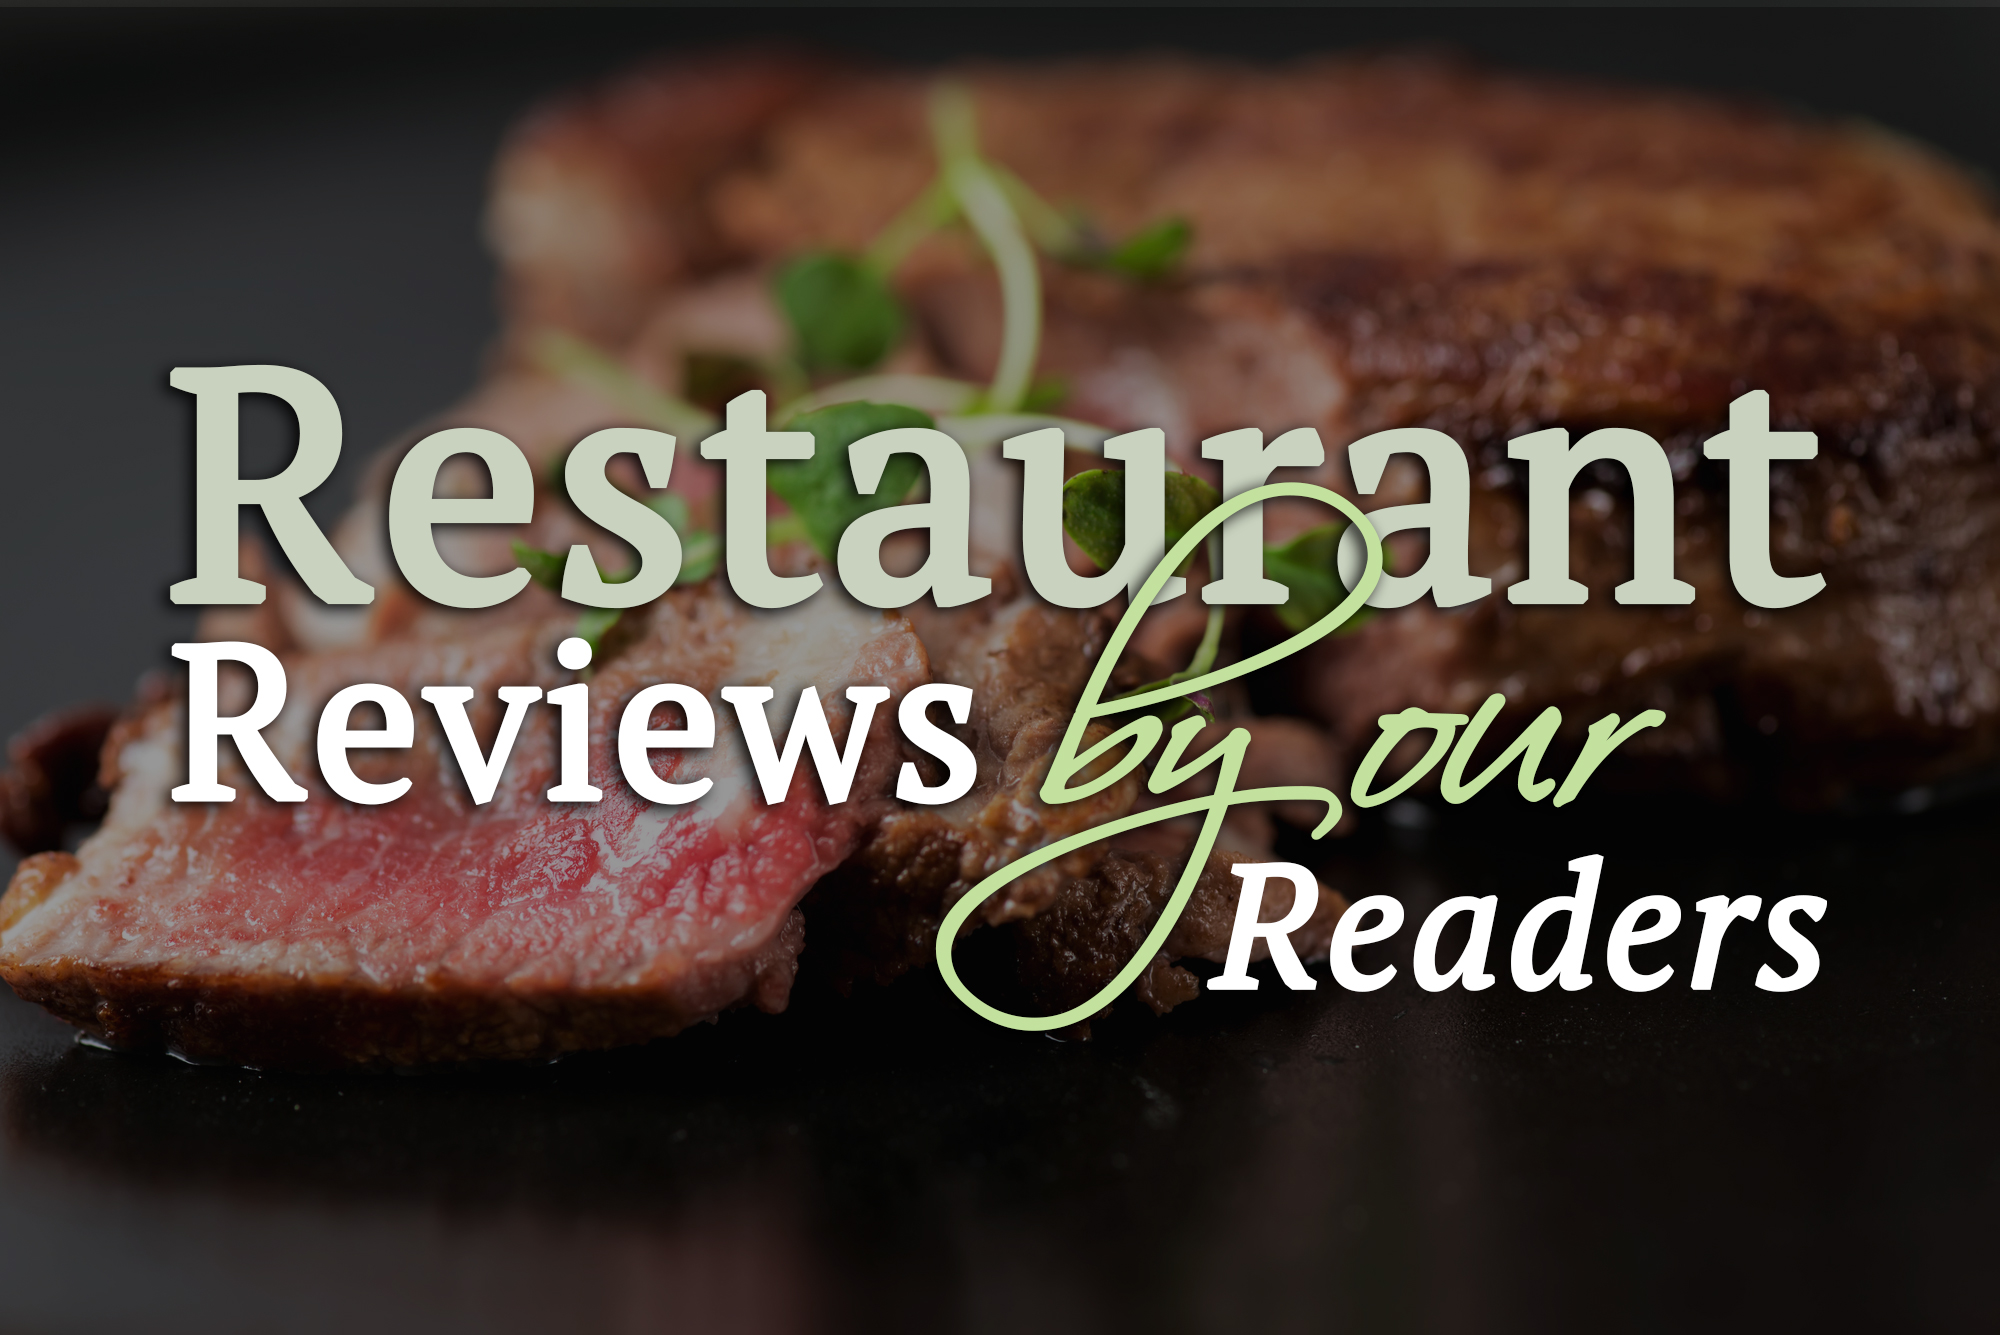 Restaurant Reviews by our Readers